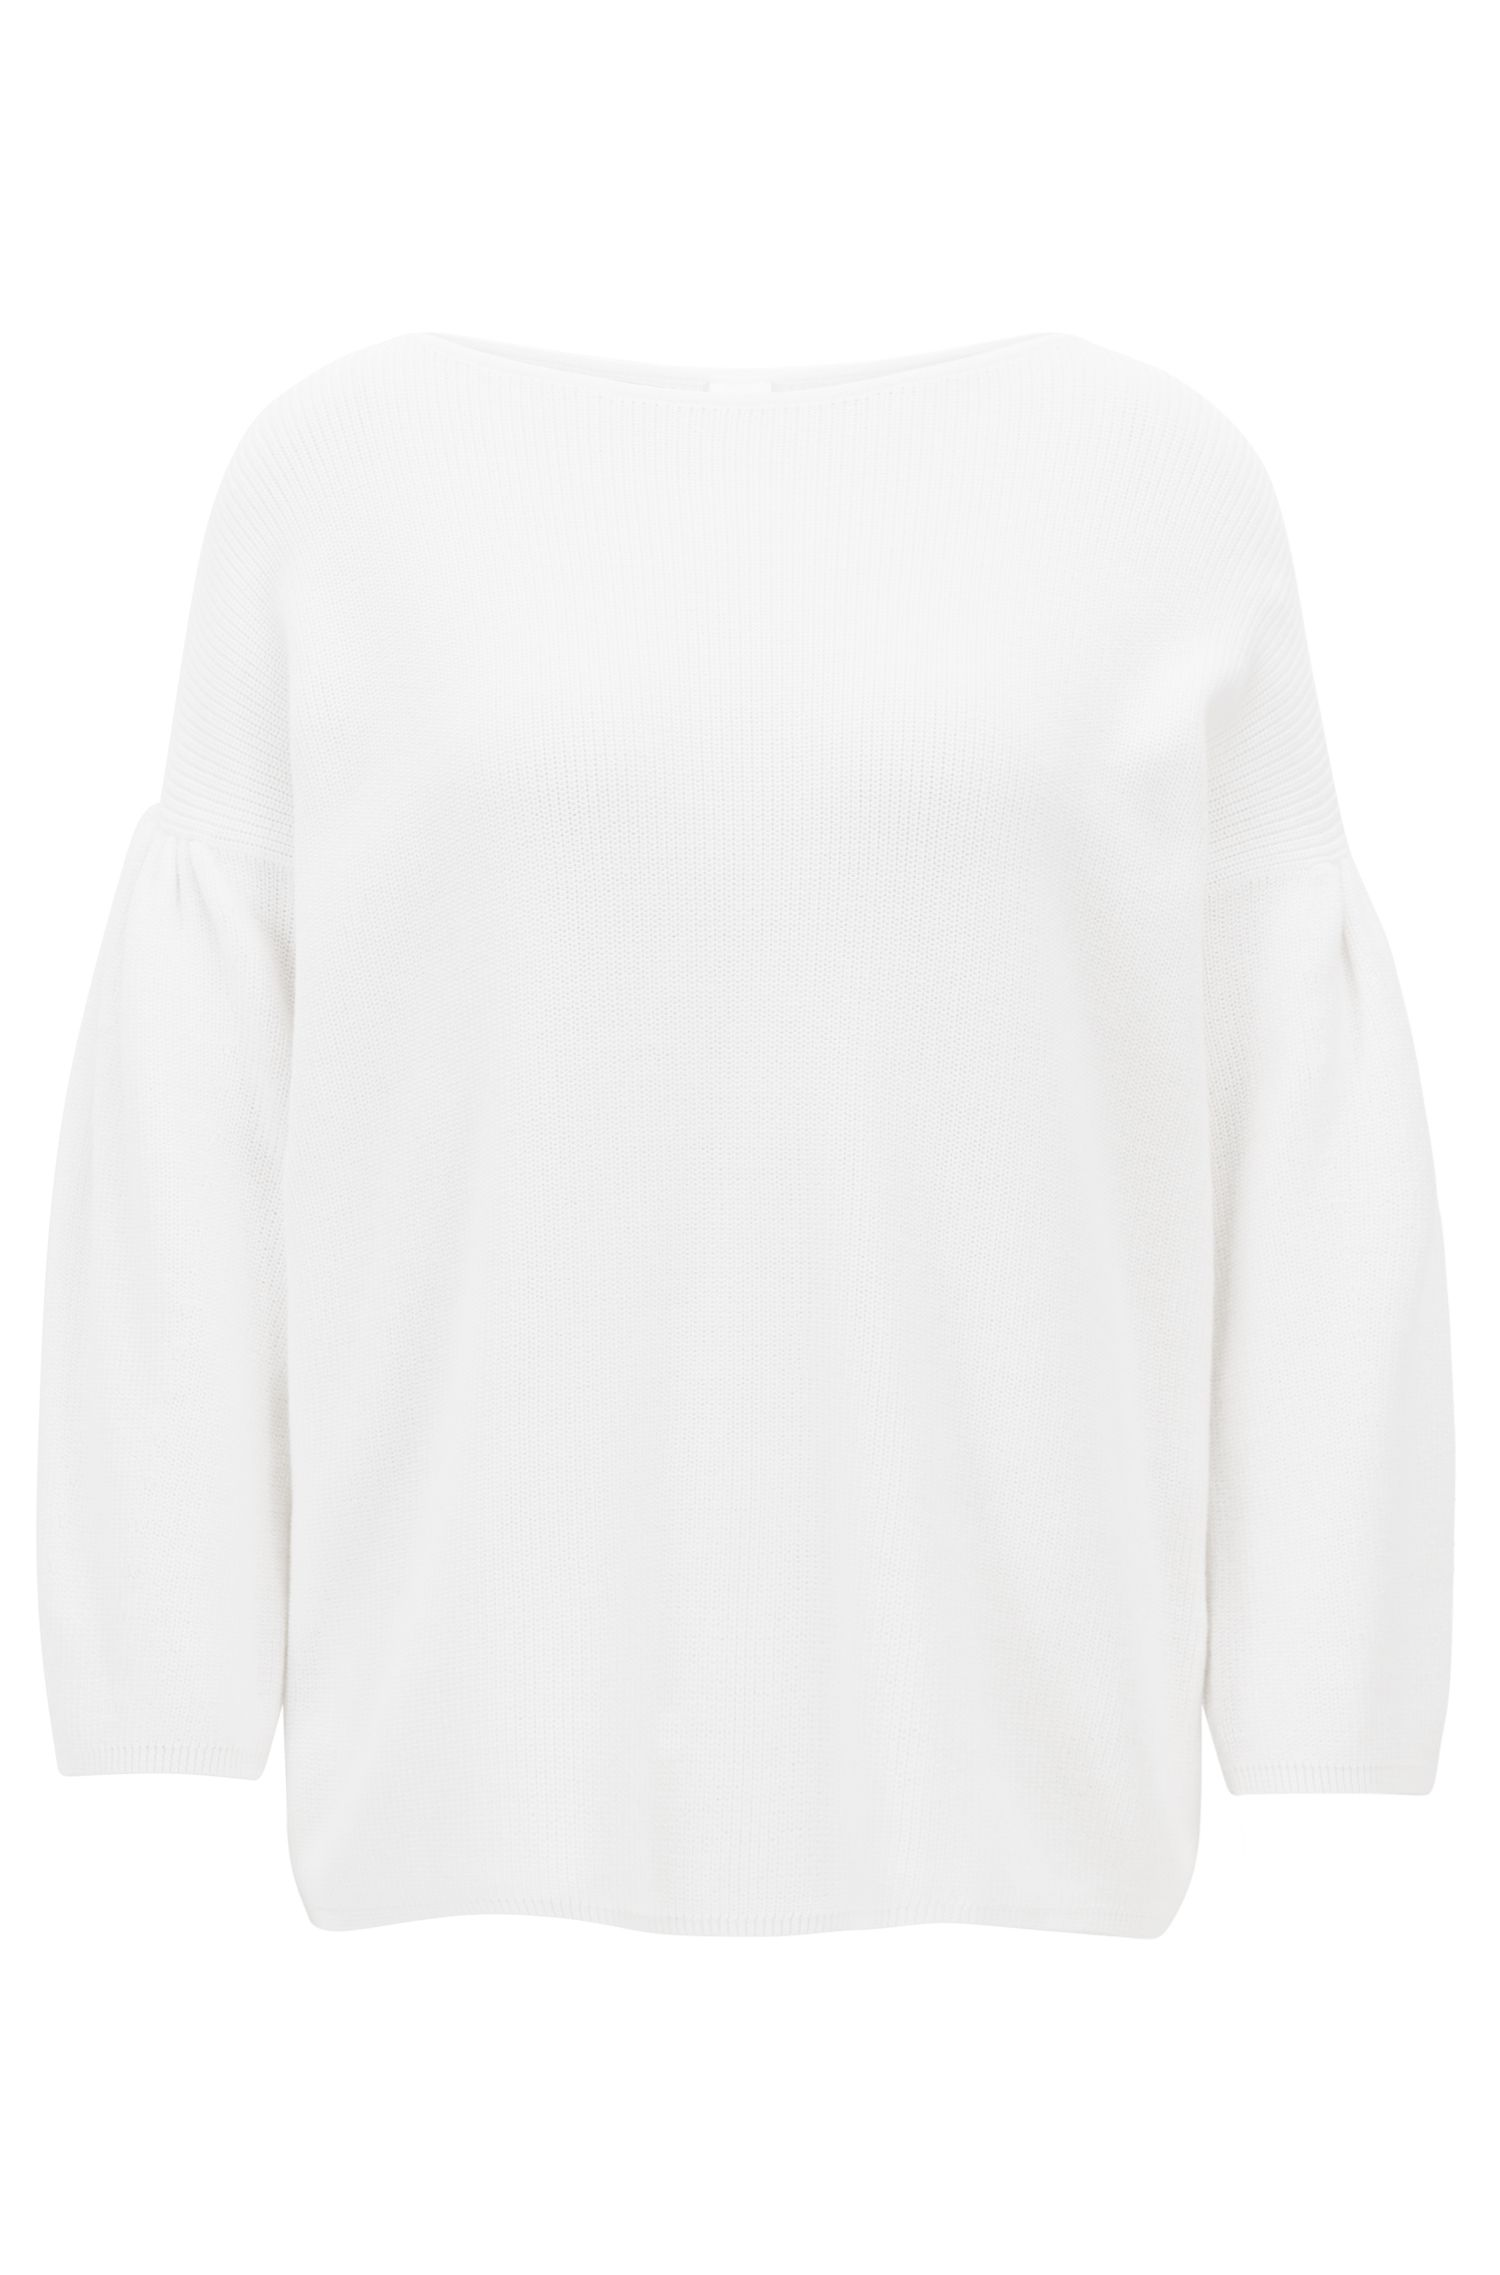 Boat-neck sweater with dropped shoulders and gathered sleeves